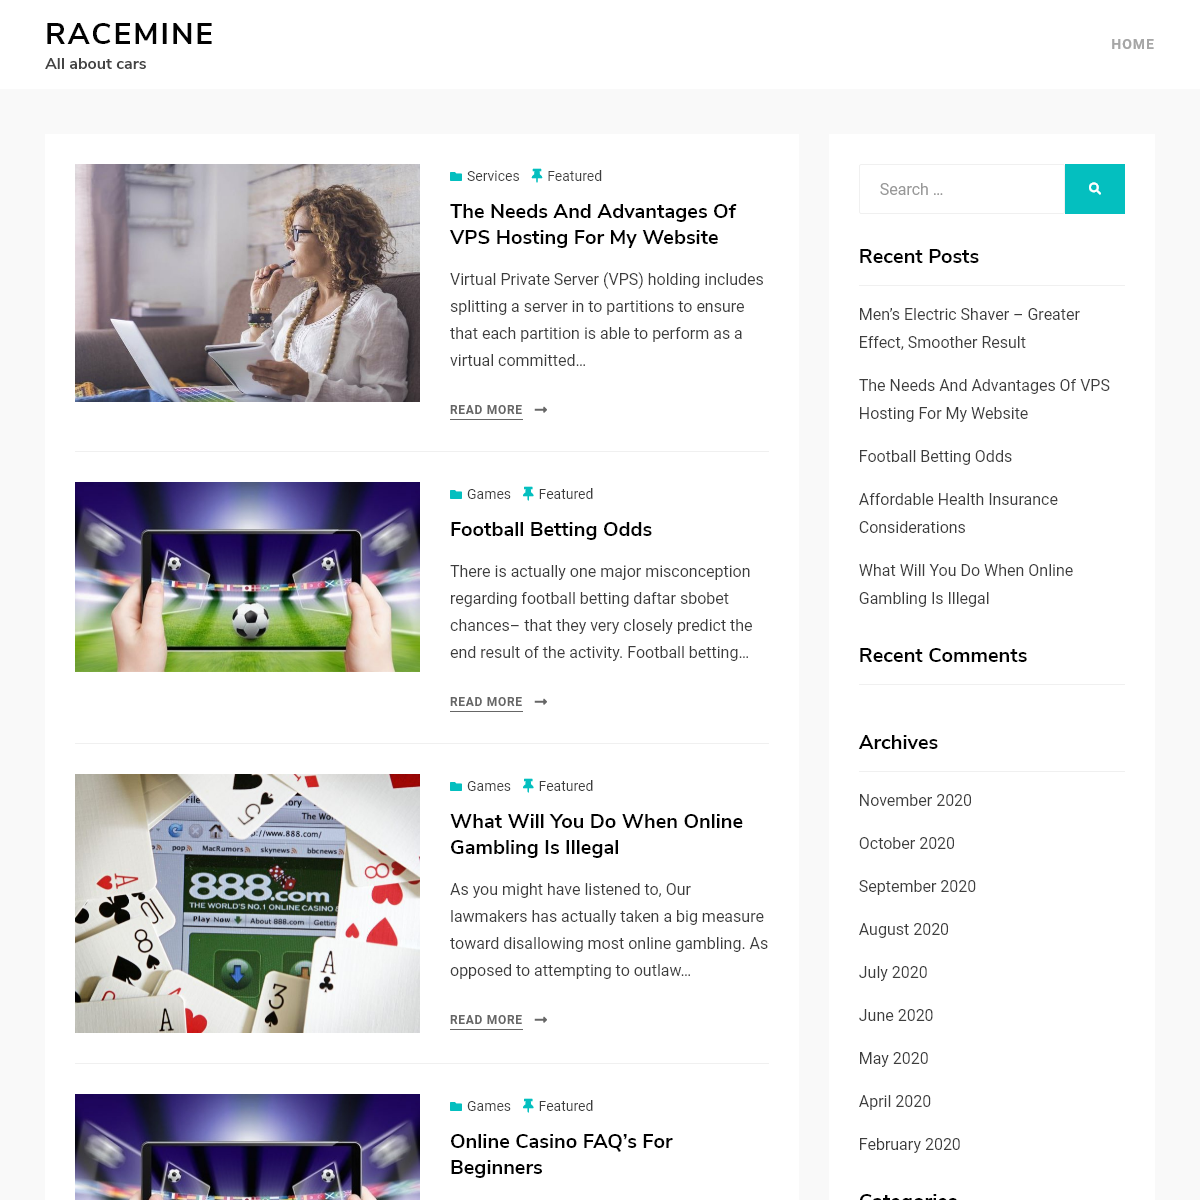 Racemine – All about cars